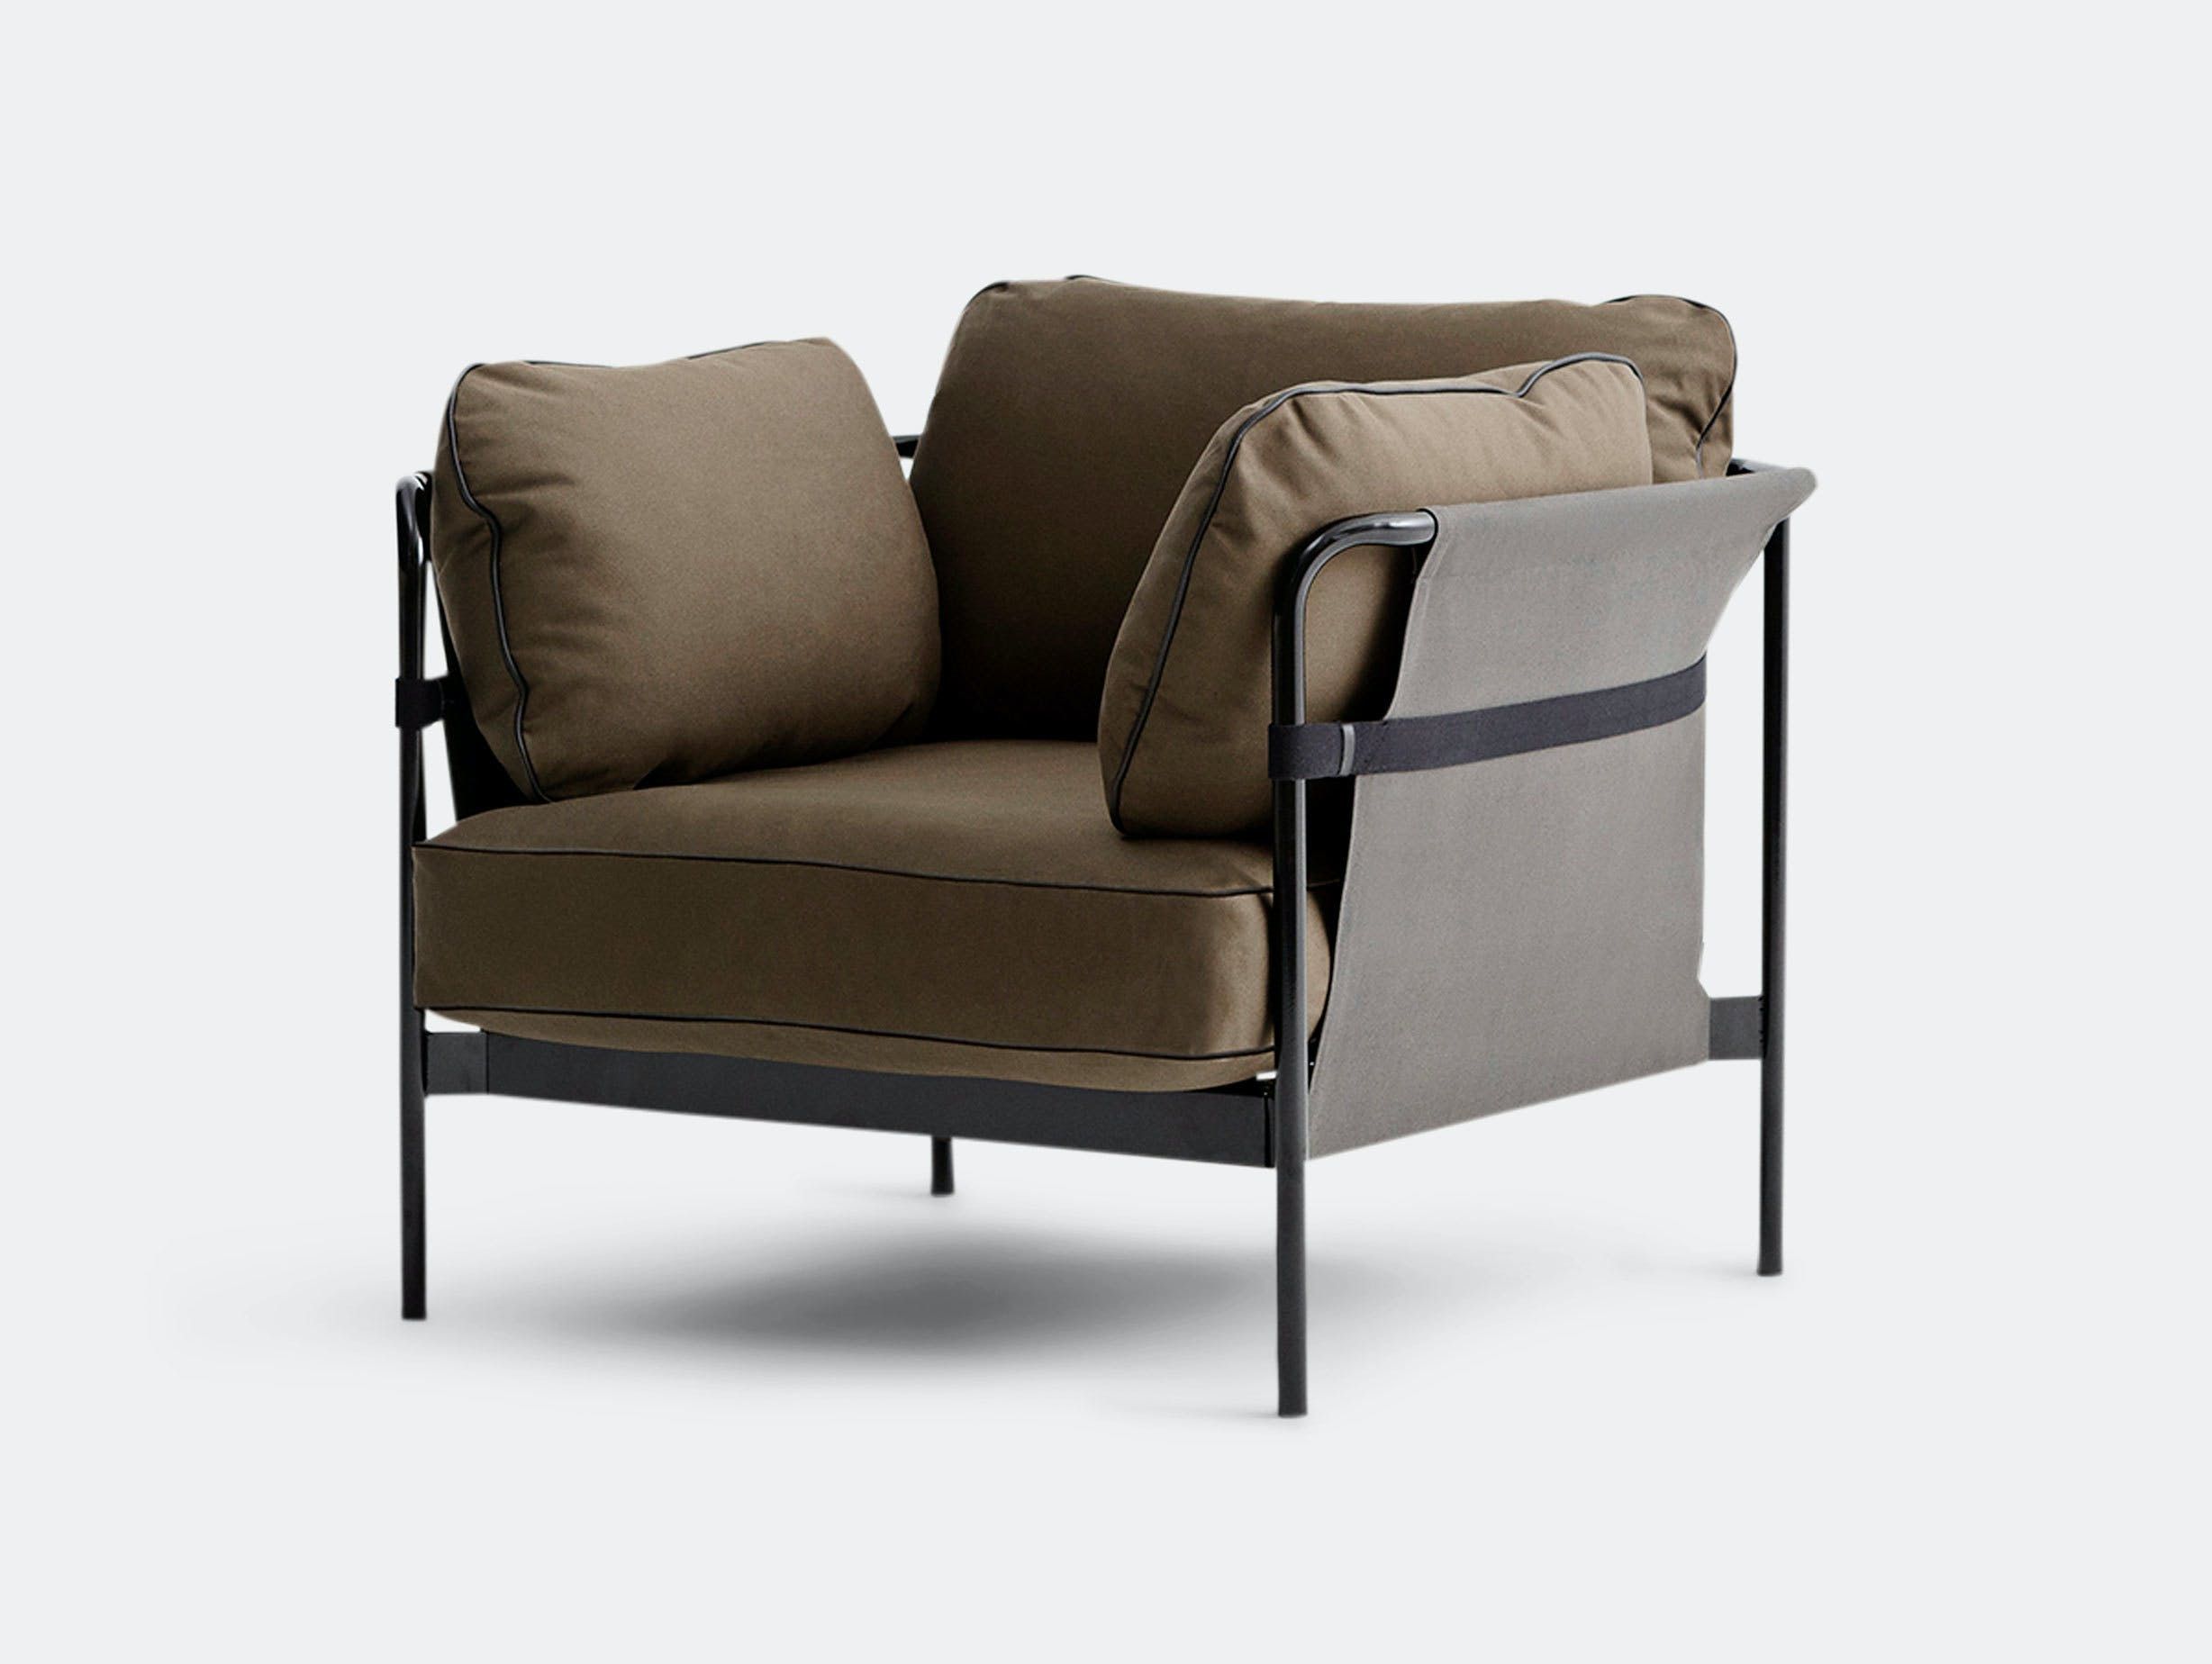 Hay Can Armchair Black Frame Outer Fabric Grey Canvas Cushions Army Canvas Ronan And Erwan Bouroullec